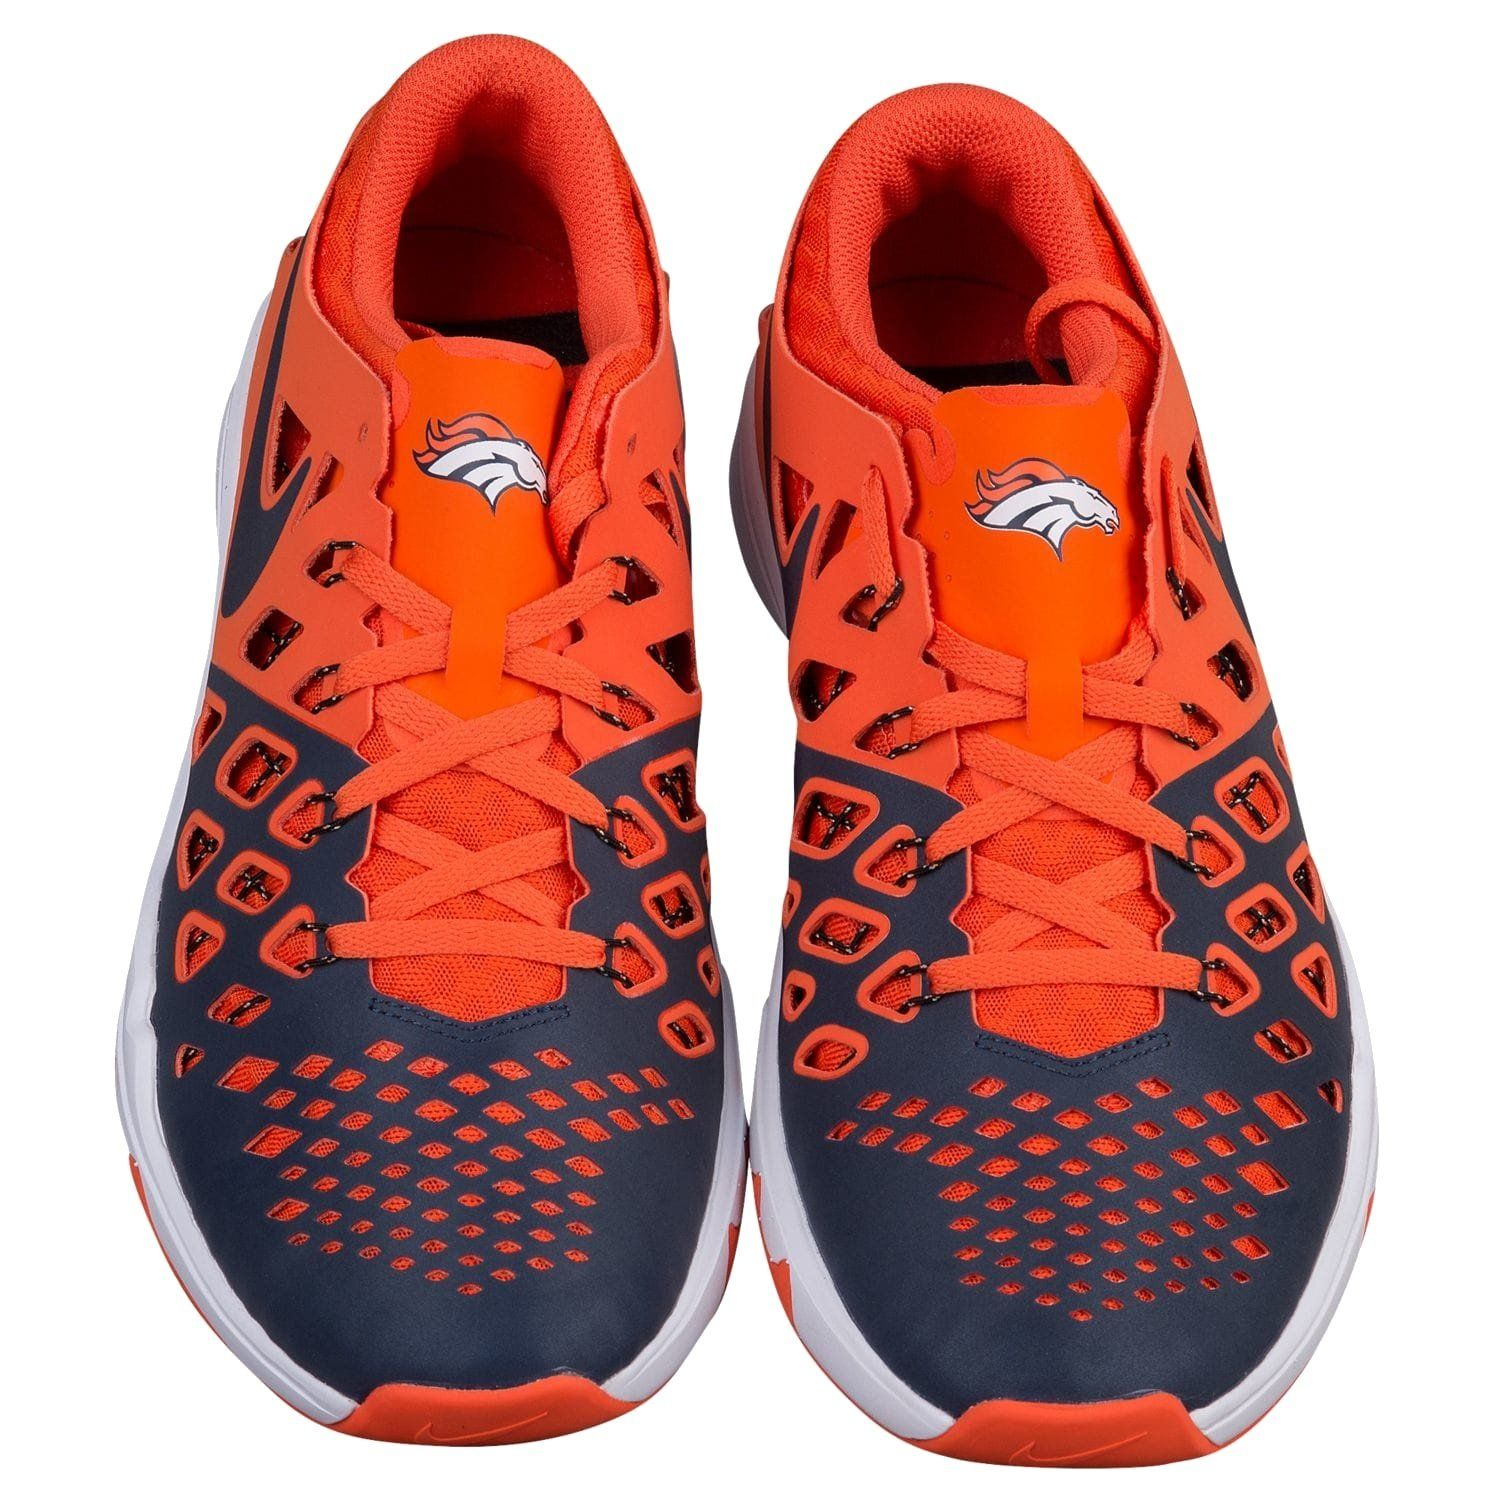 19a7b52292b2b Nfl Kickoff Speed Train Shoes Denver Collection Amp Broncos 4 Nike gqSFnwxHE